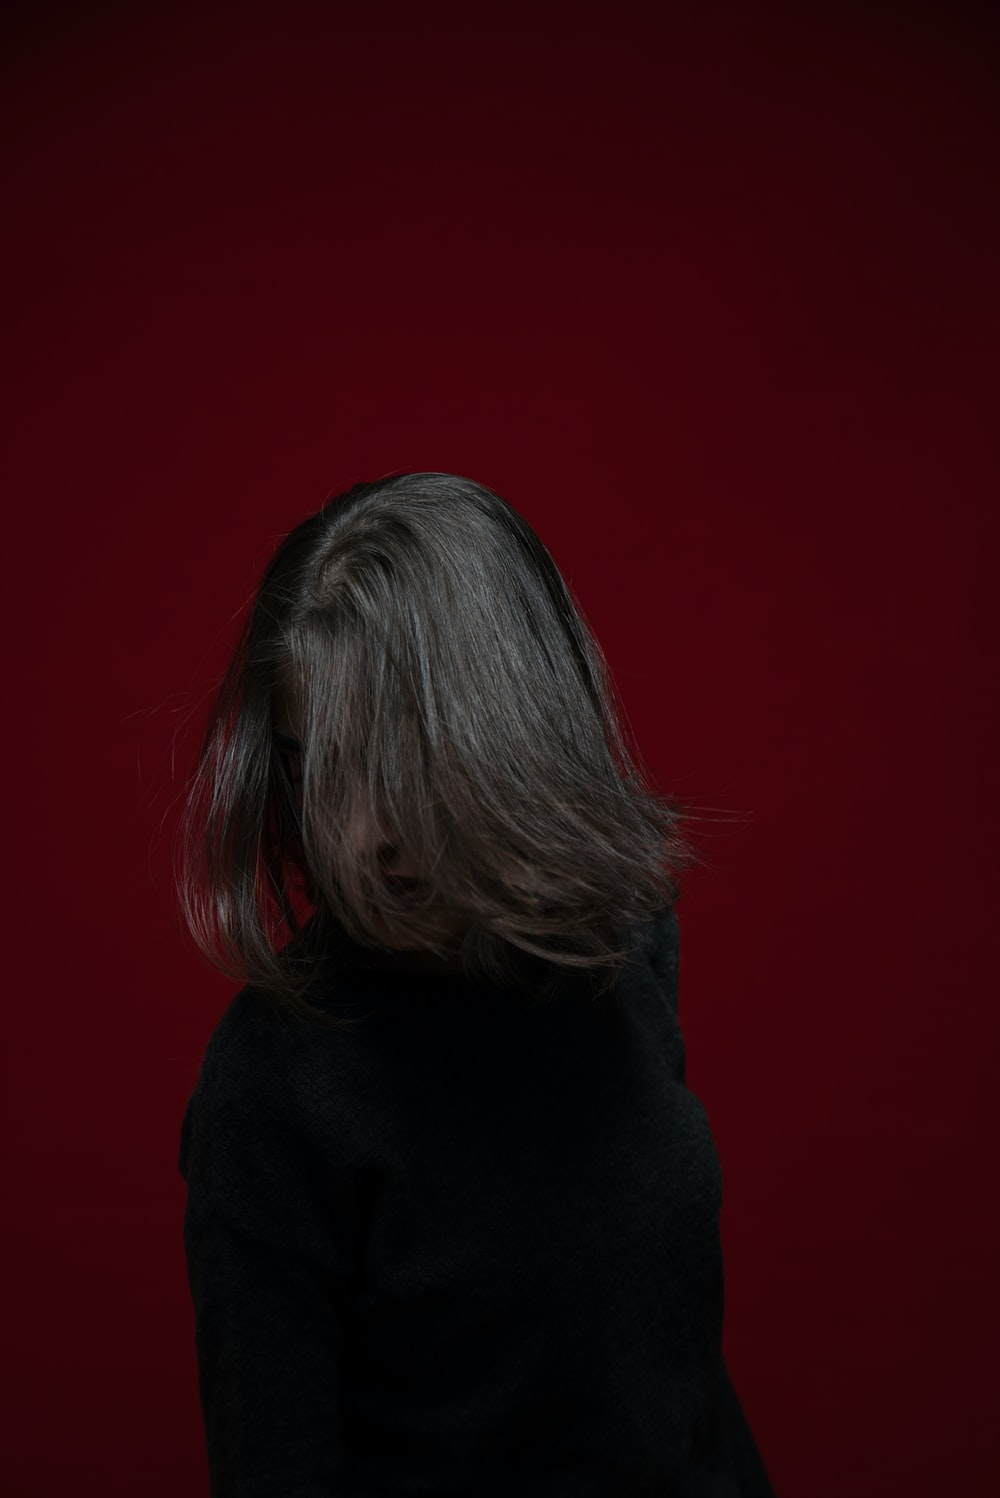 woman in black hoodie standing near red wall